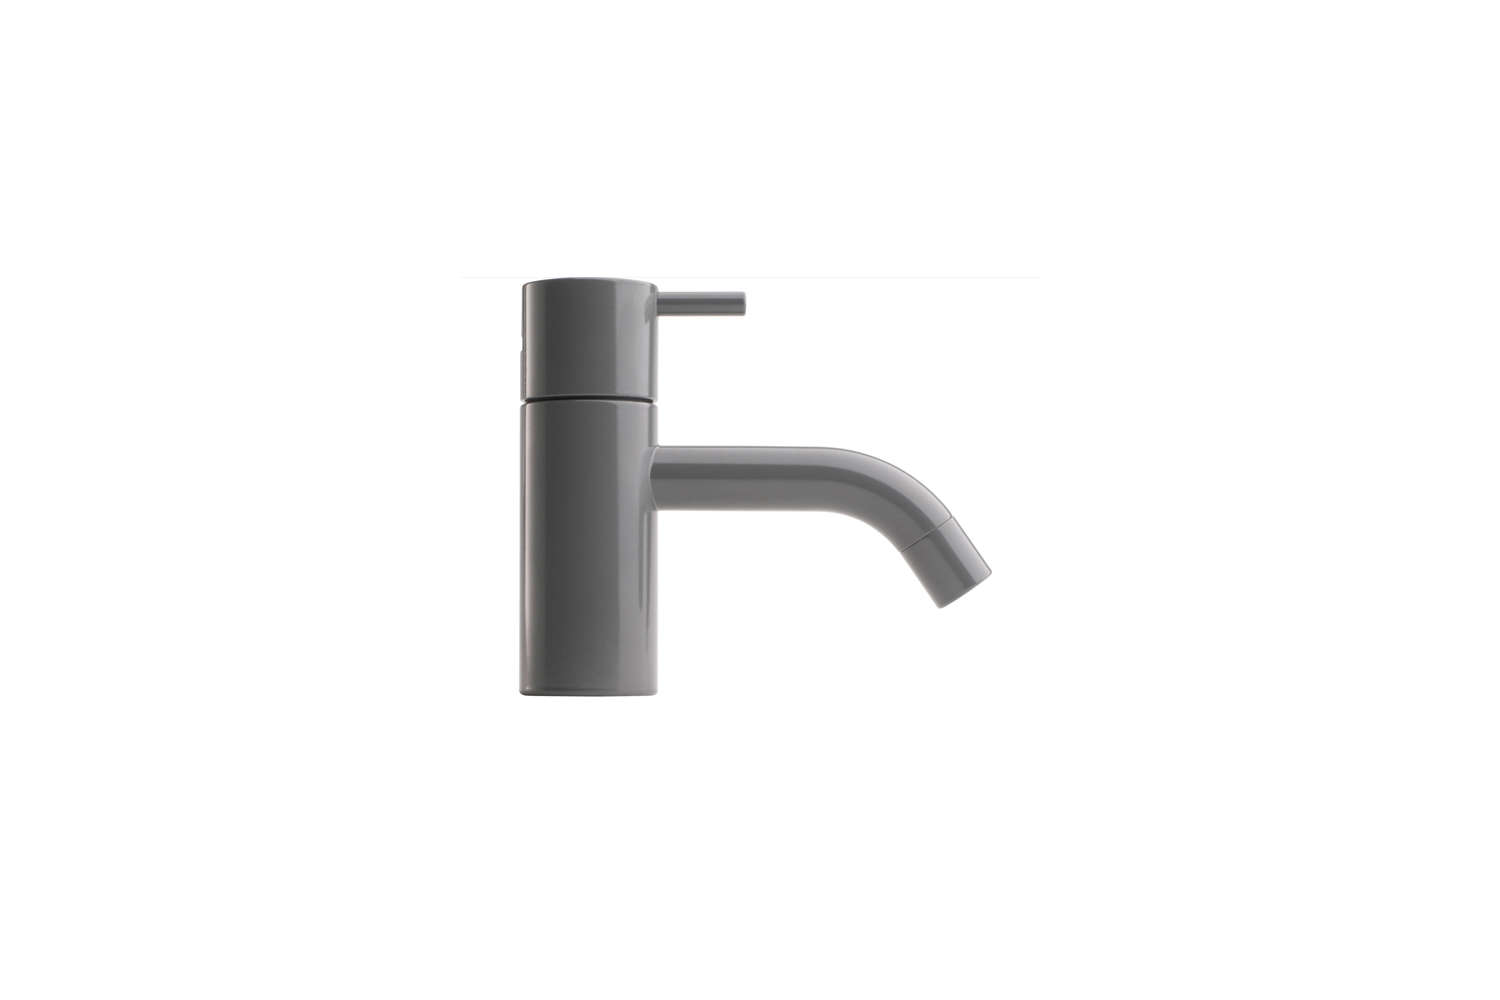 Another model from Arne Jacobsen, the Vola Bathroom Faucet HVloading=